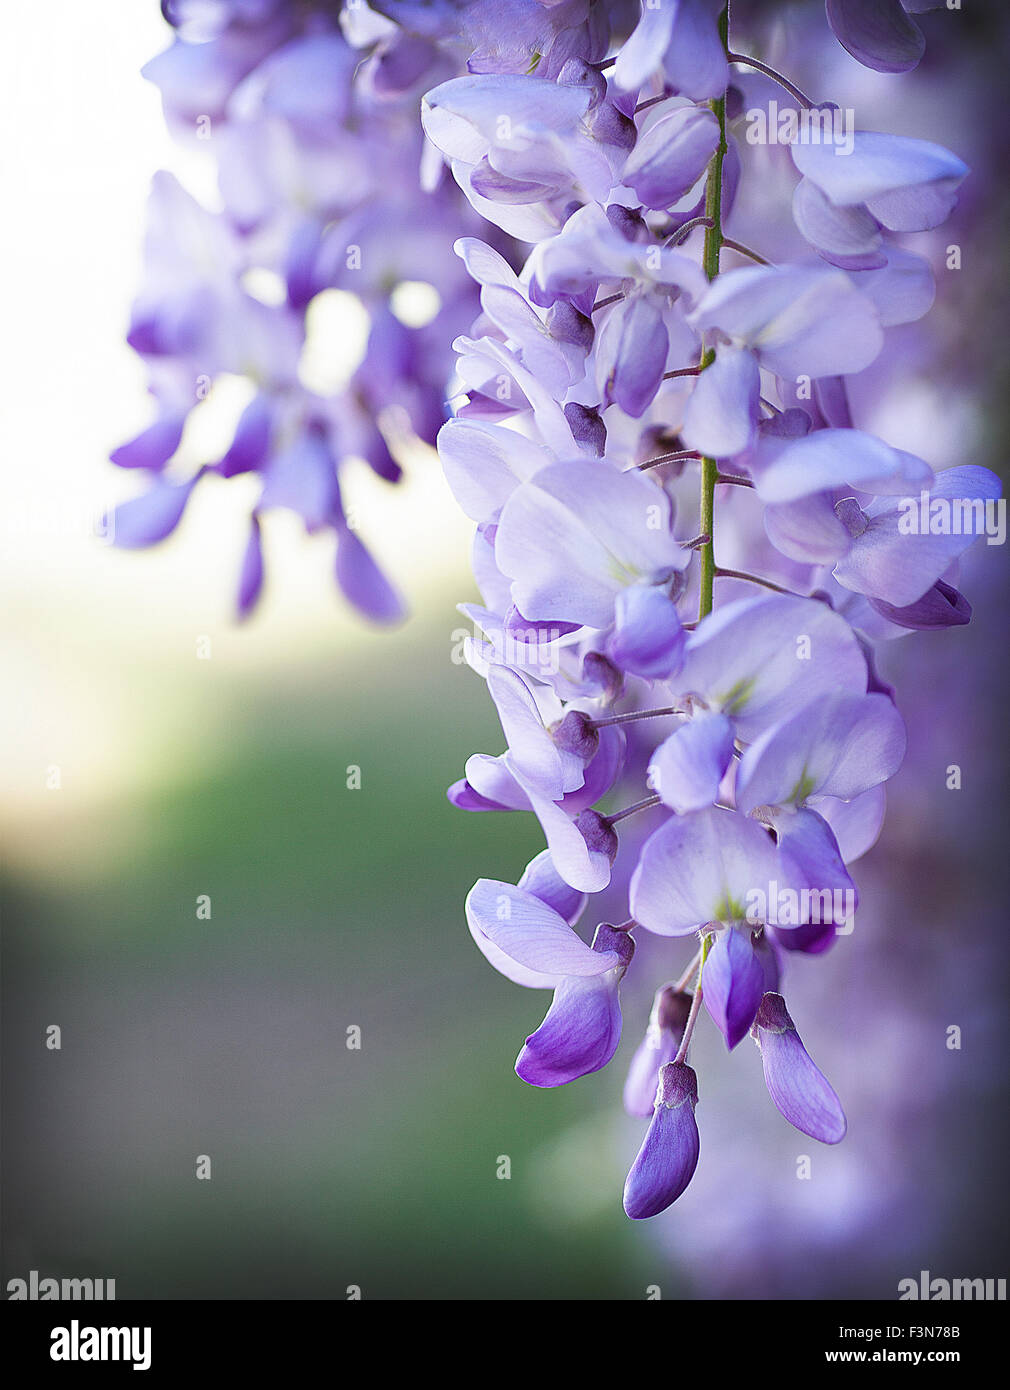 2 stems of purple and lavender wisteria floral vines hanging down against a blurred background - Stock Image